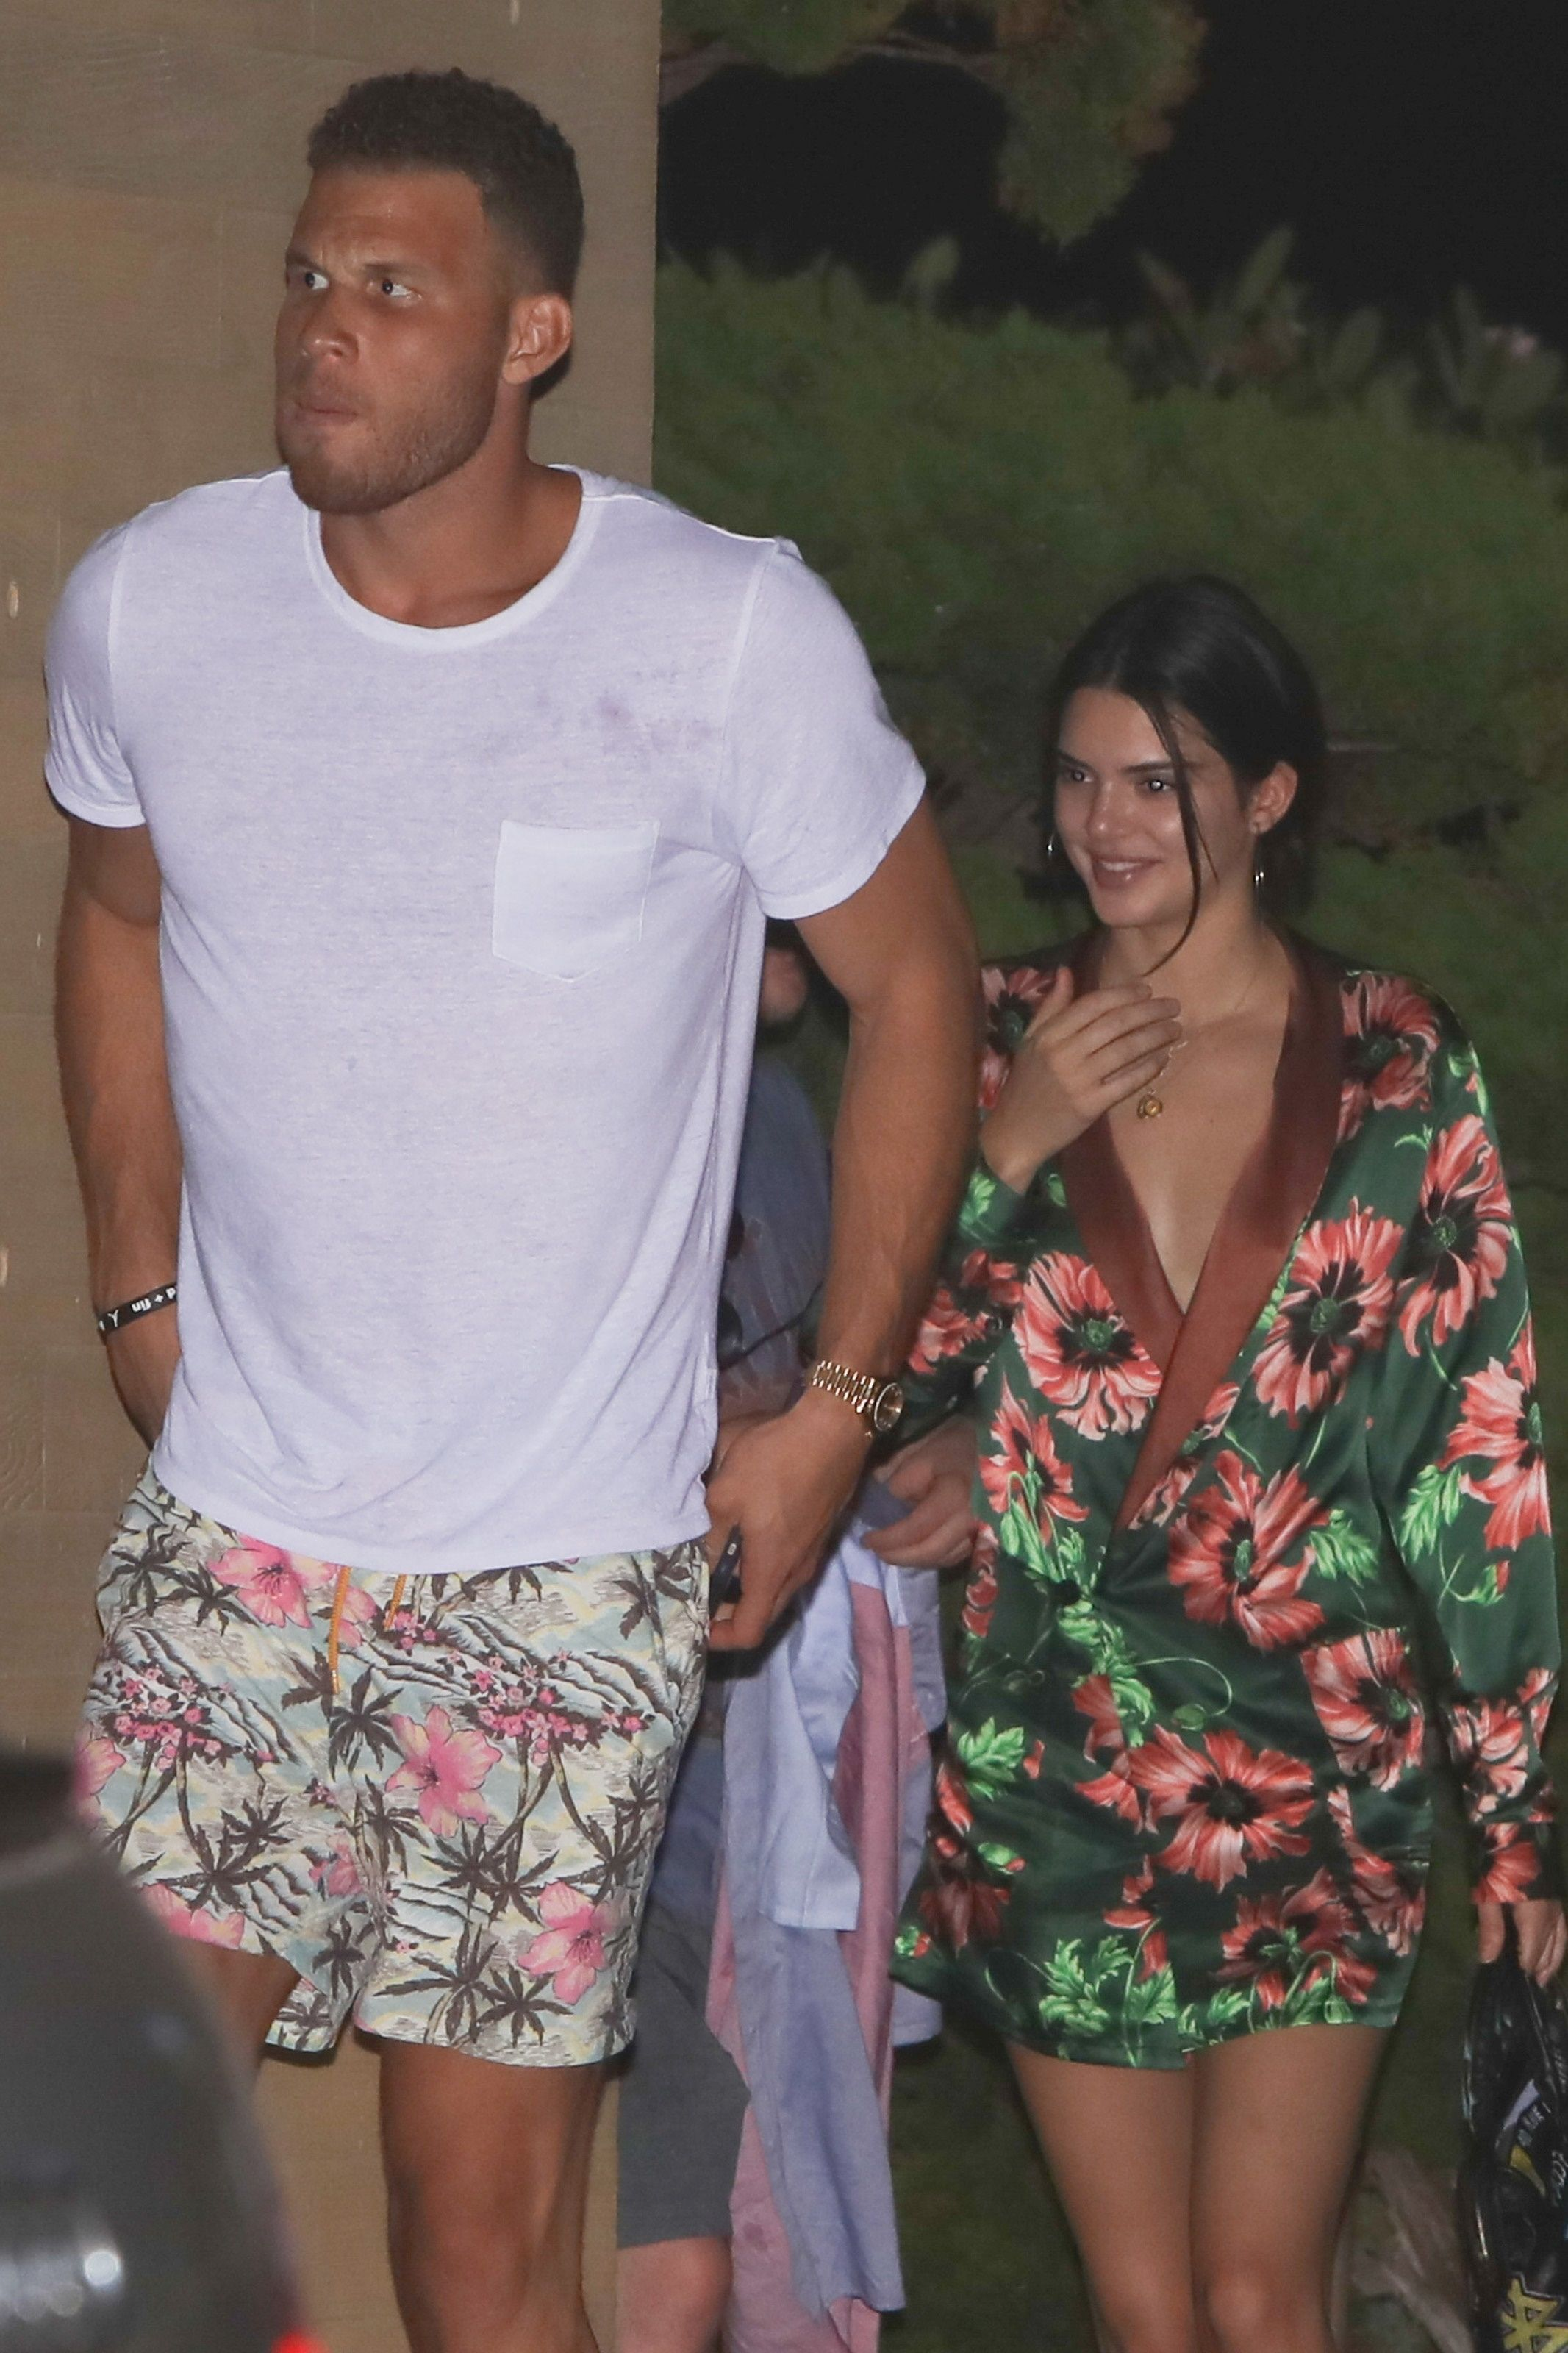 kendall jenner hanging out with blake griffin in LA